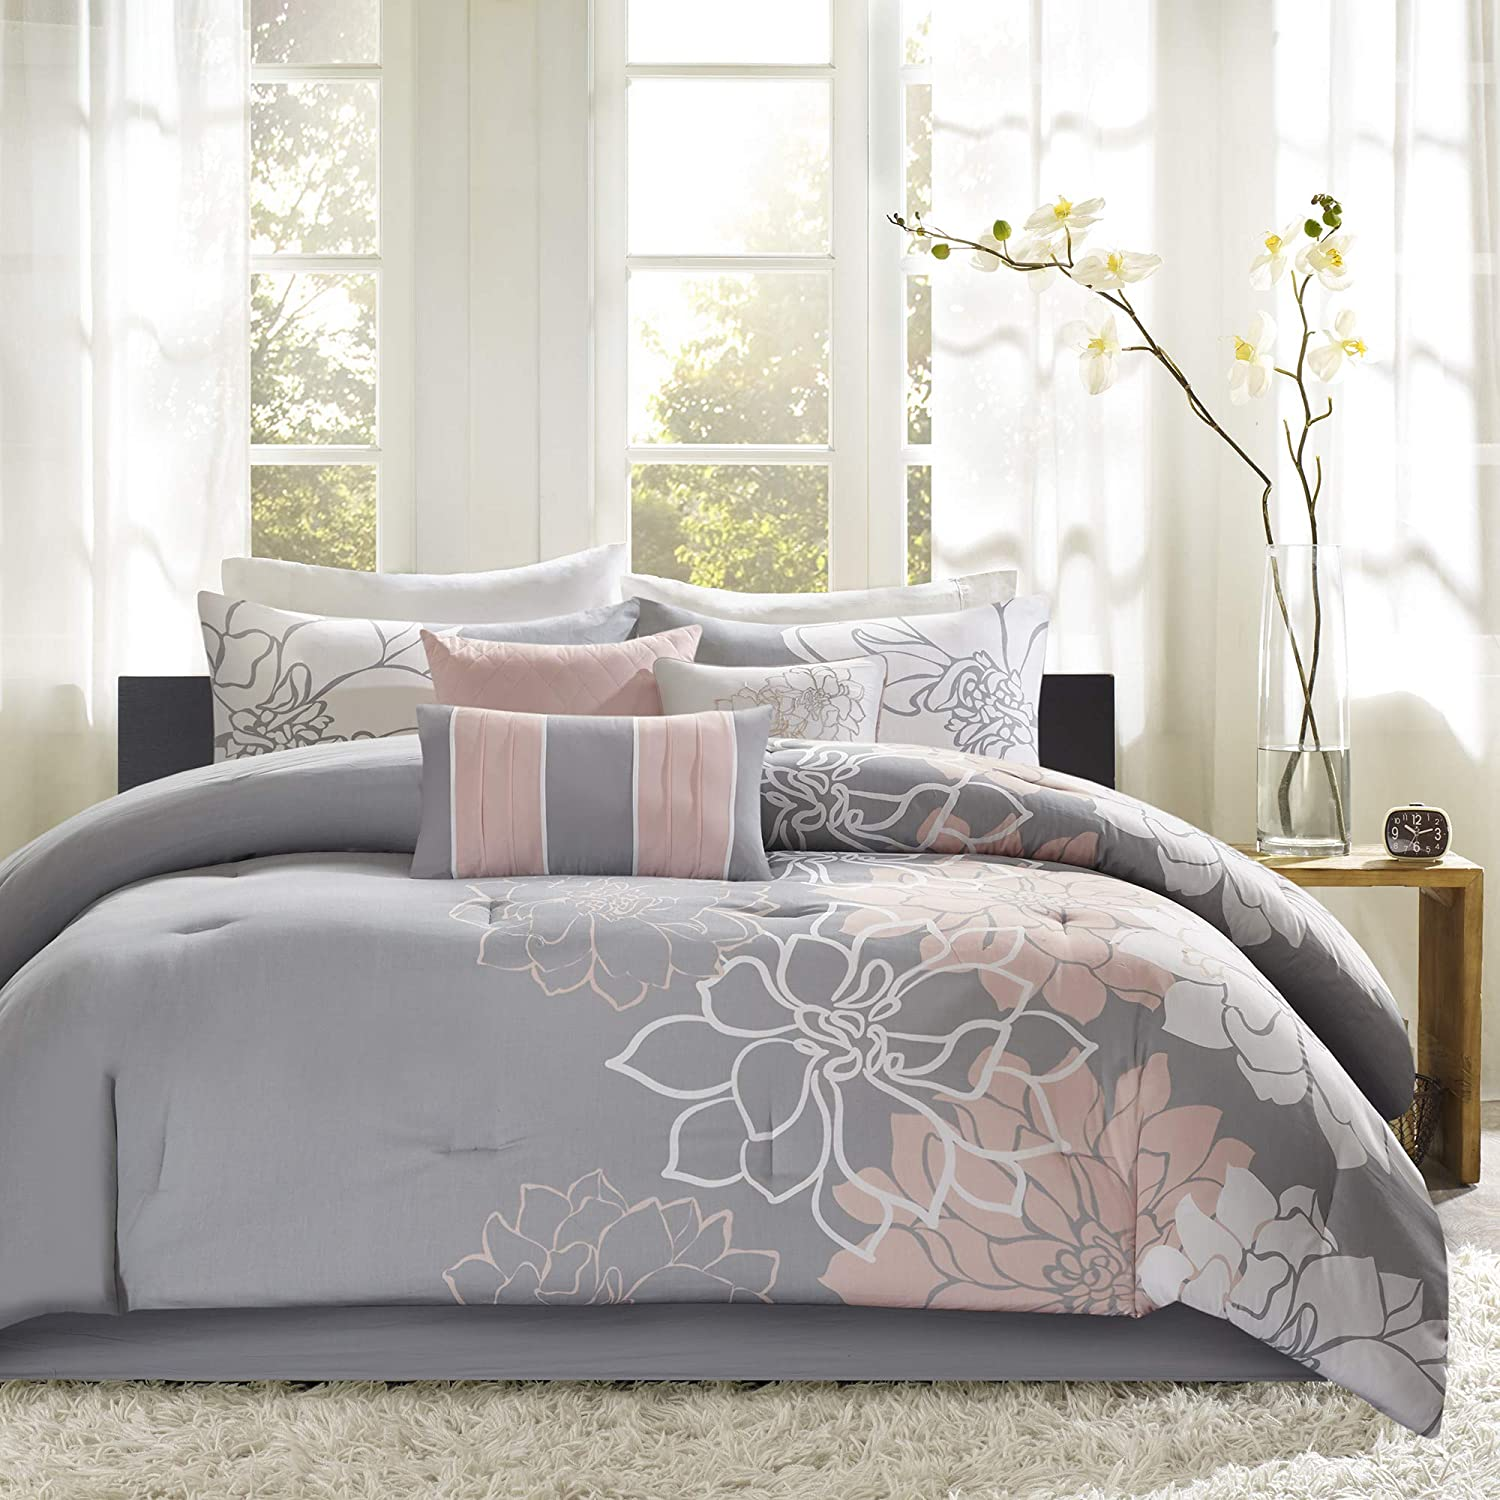 Madison Park Lola, Floral, Flowers – 10 Pieces Bedding Sets Sateen, Cotton  Poly Crossweave Bedroom Comforters, King, Grey/Blush